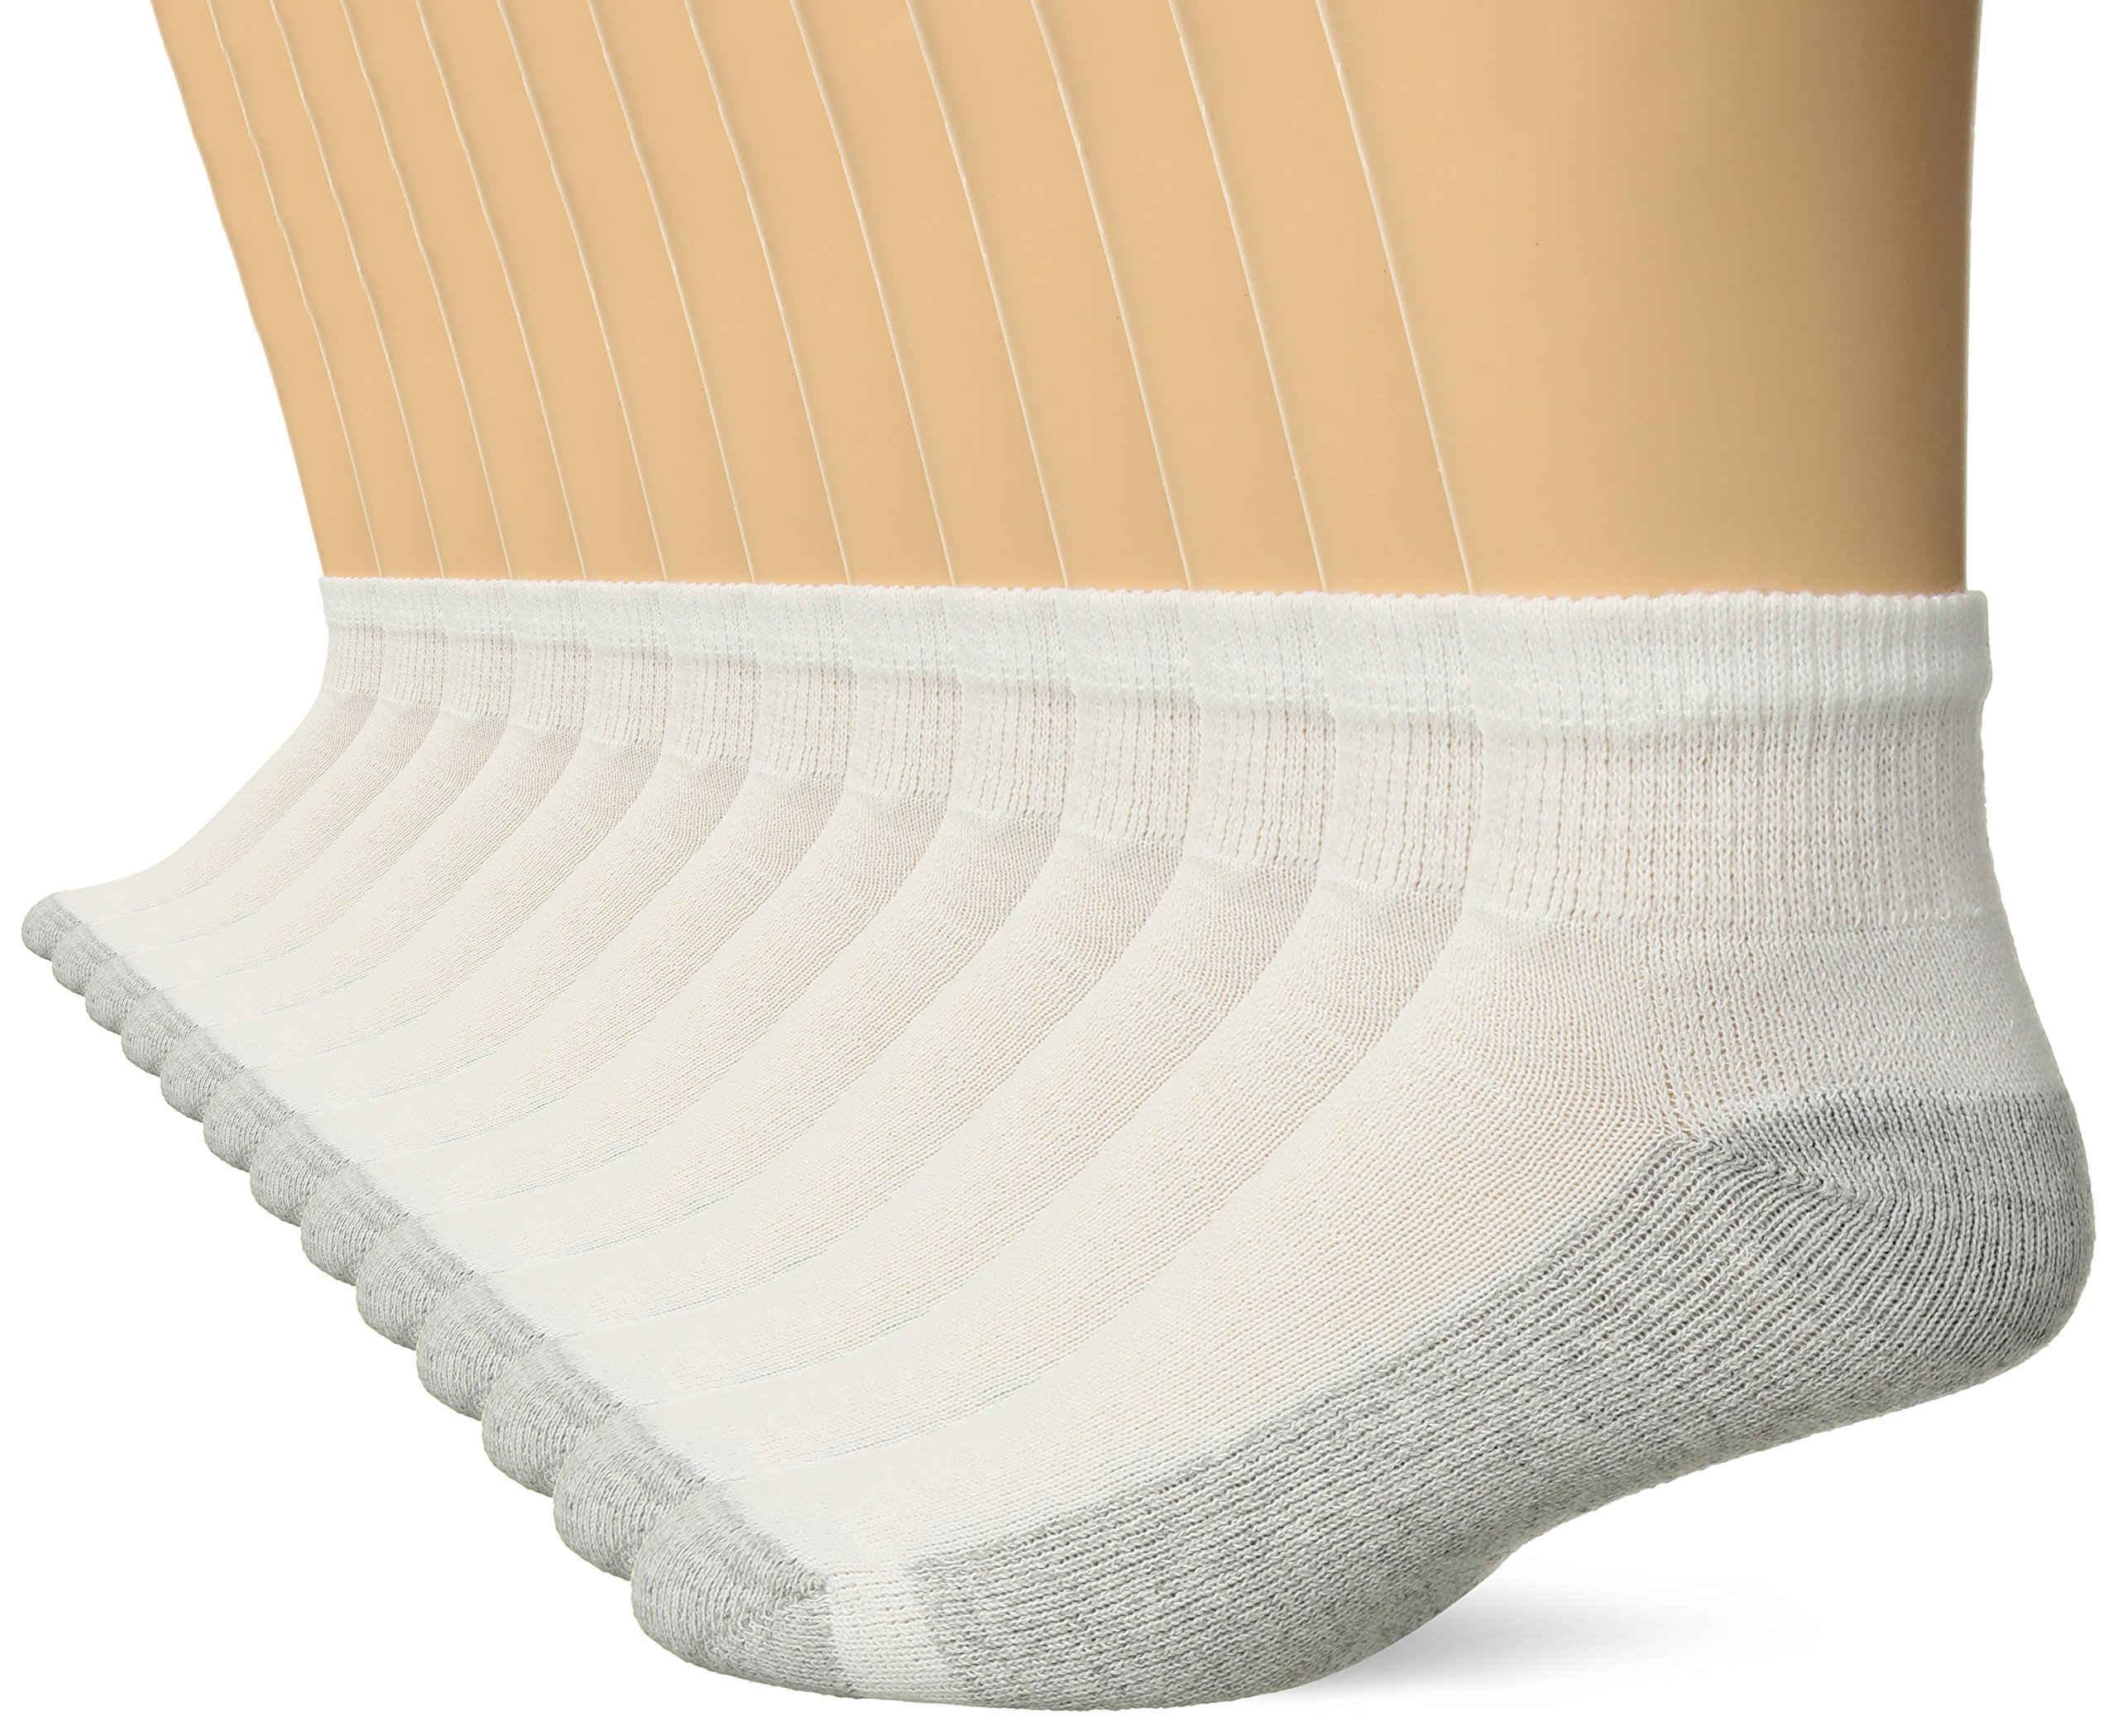 Hanes Men's Freshiq Ankle Socks 13 Pack (Includes 1 Free Bonus Pair), White, 10-13 (Shoe Size: 6-12)